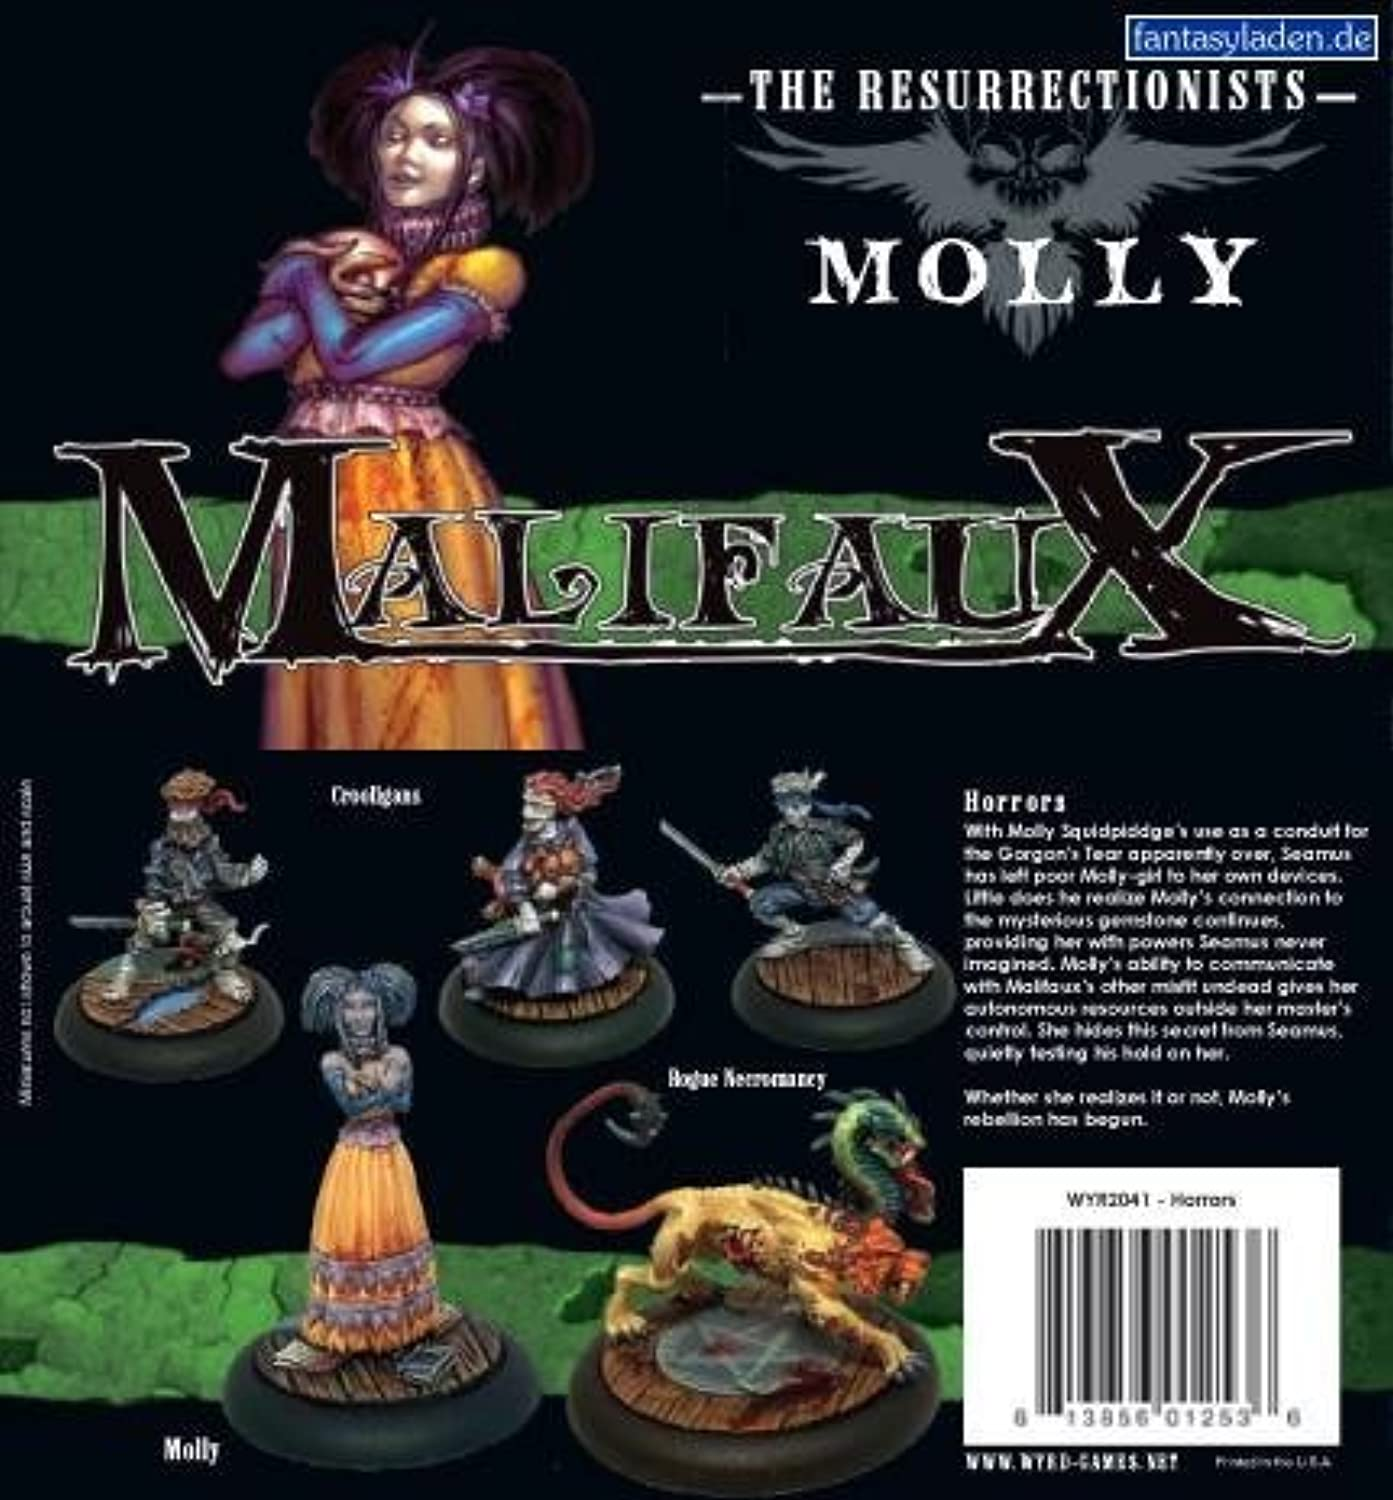 Molly scatola Set Ressurectionists Malifaux